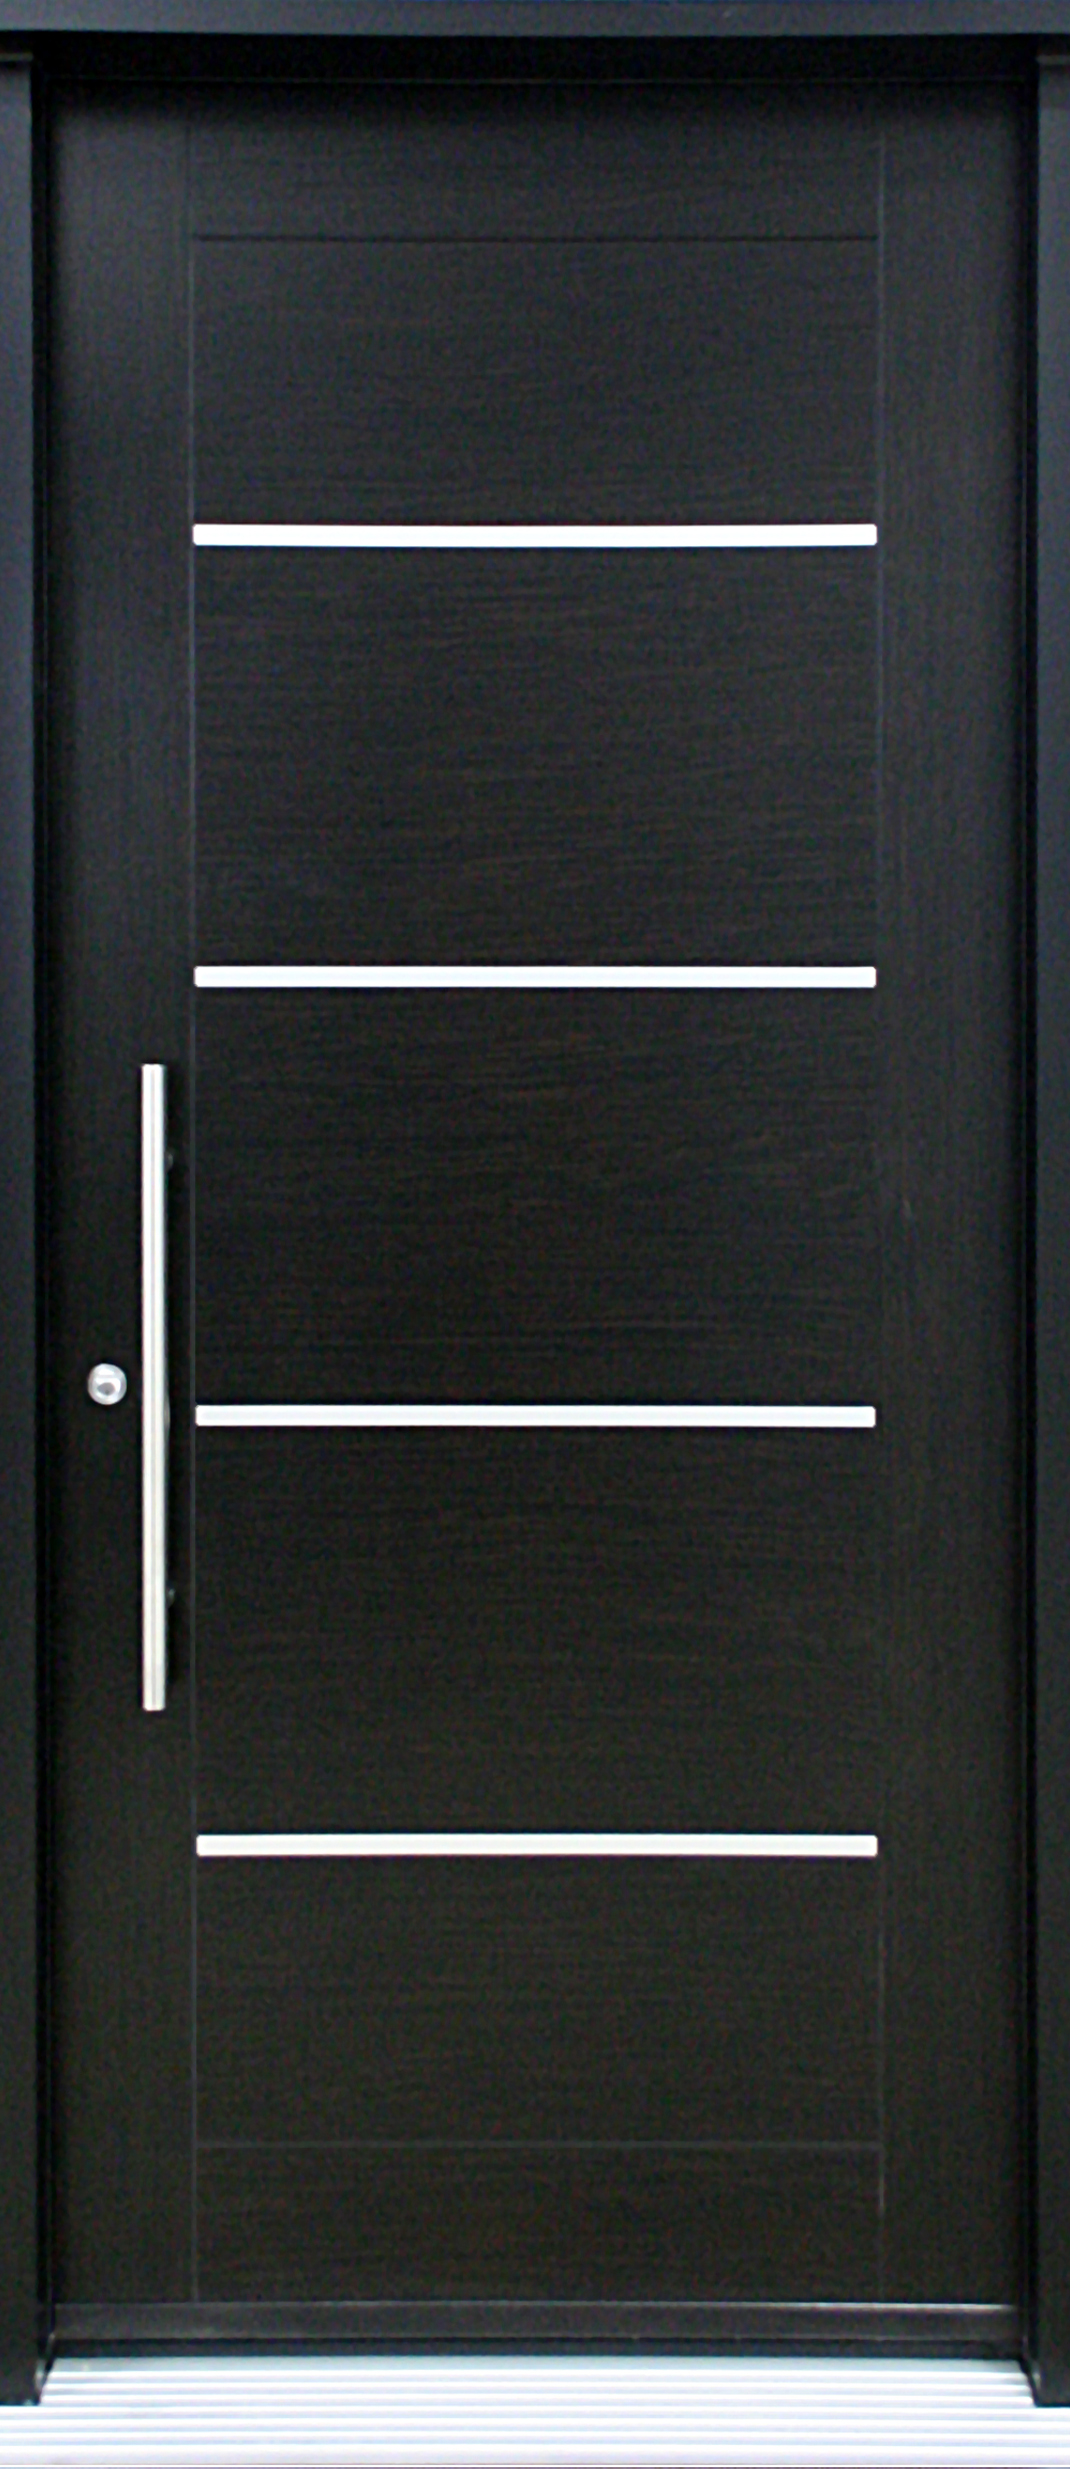 Mod le de porte contemporaine sigma2 portatec for Portes interieures bois contemporaines